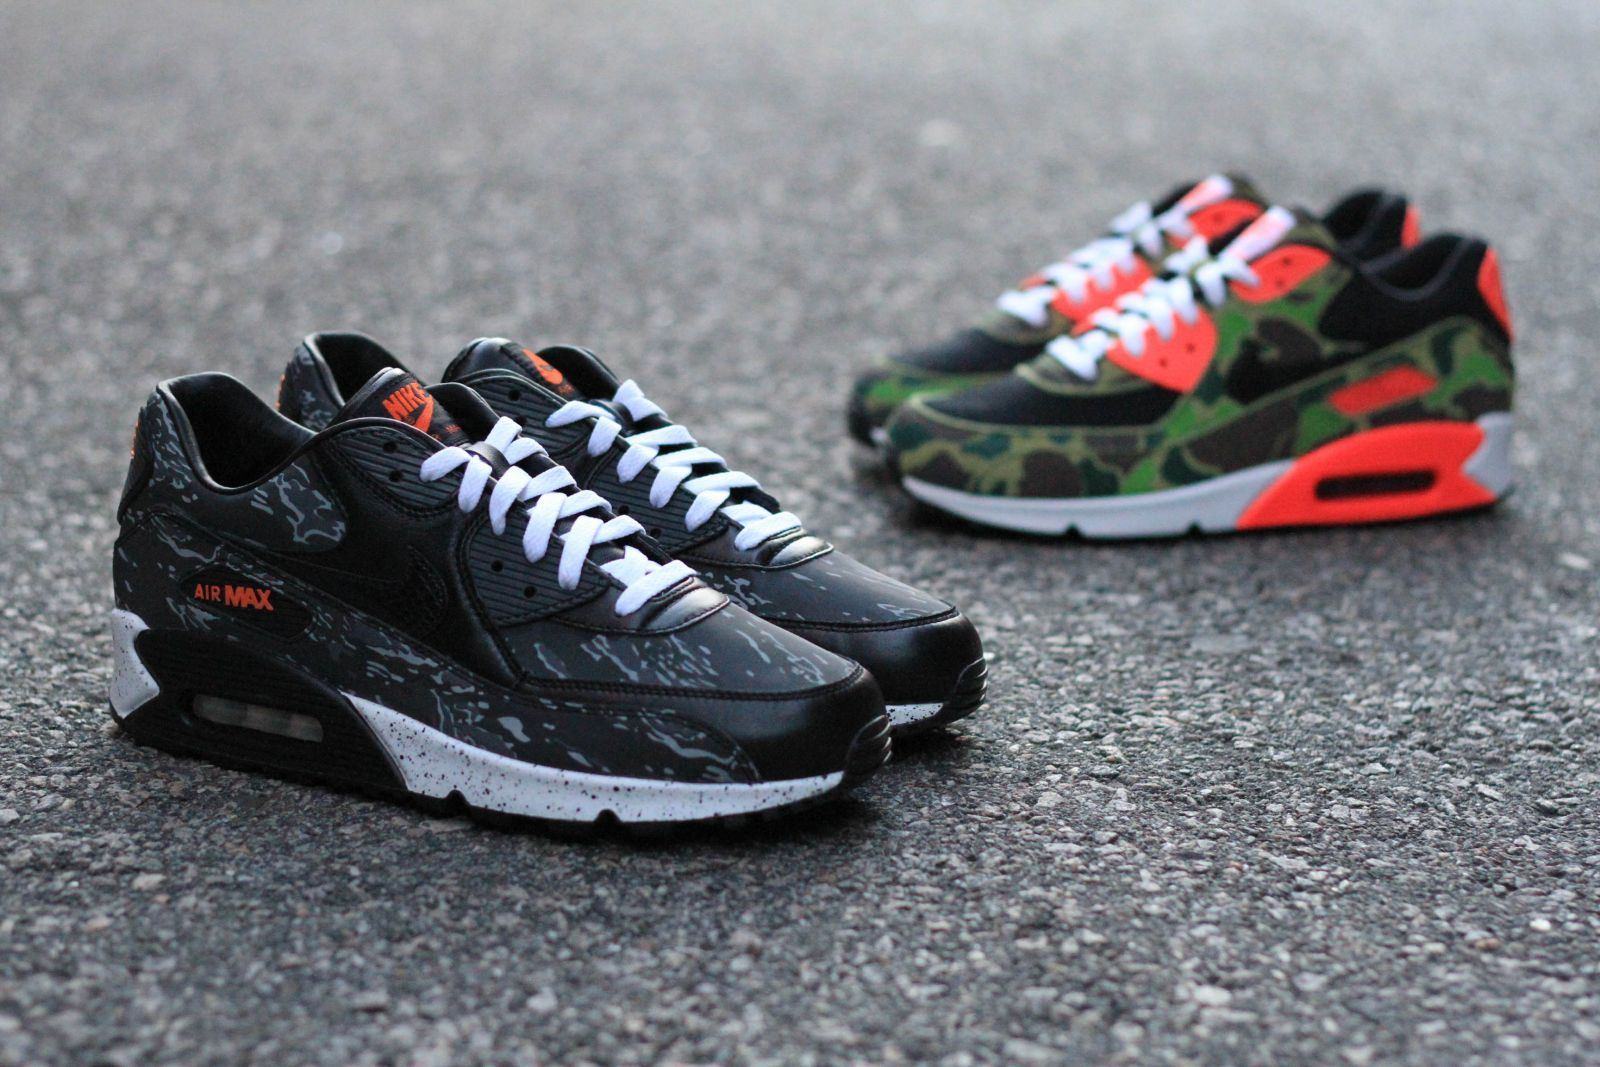 atmos x Nike Air Max 90 'Premium Camo Pack' Available at